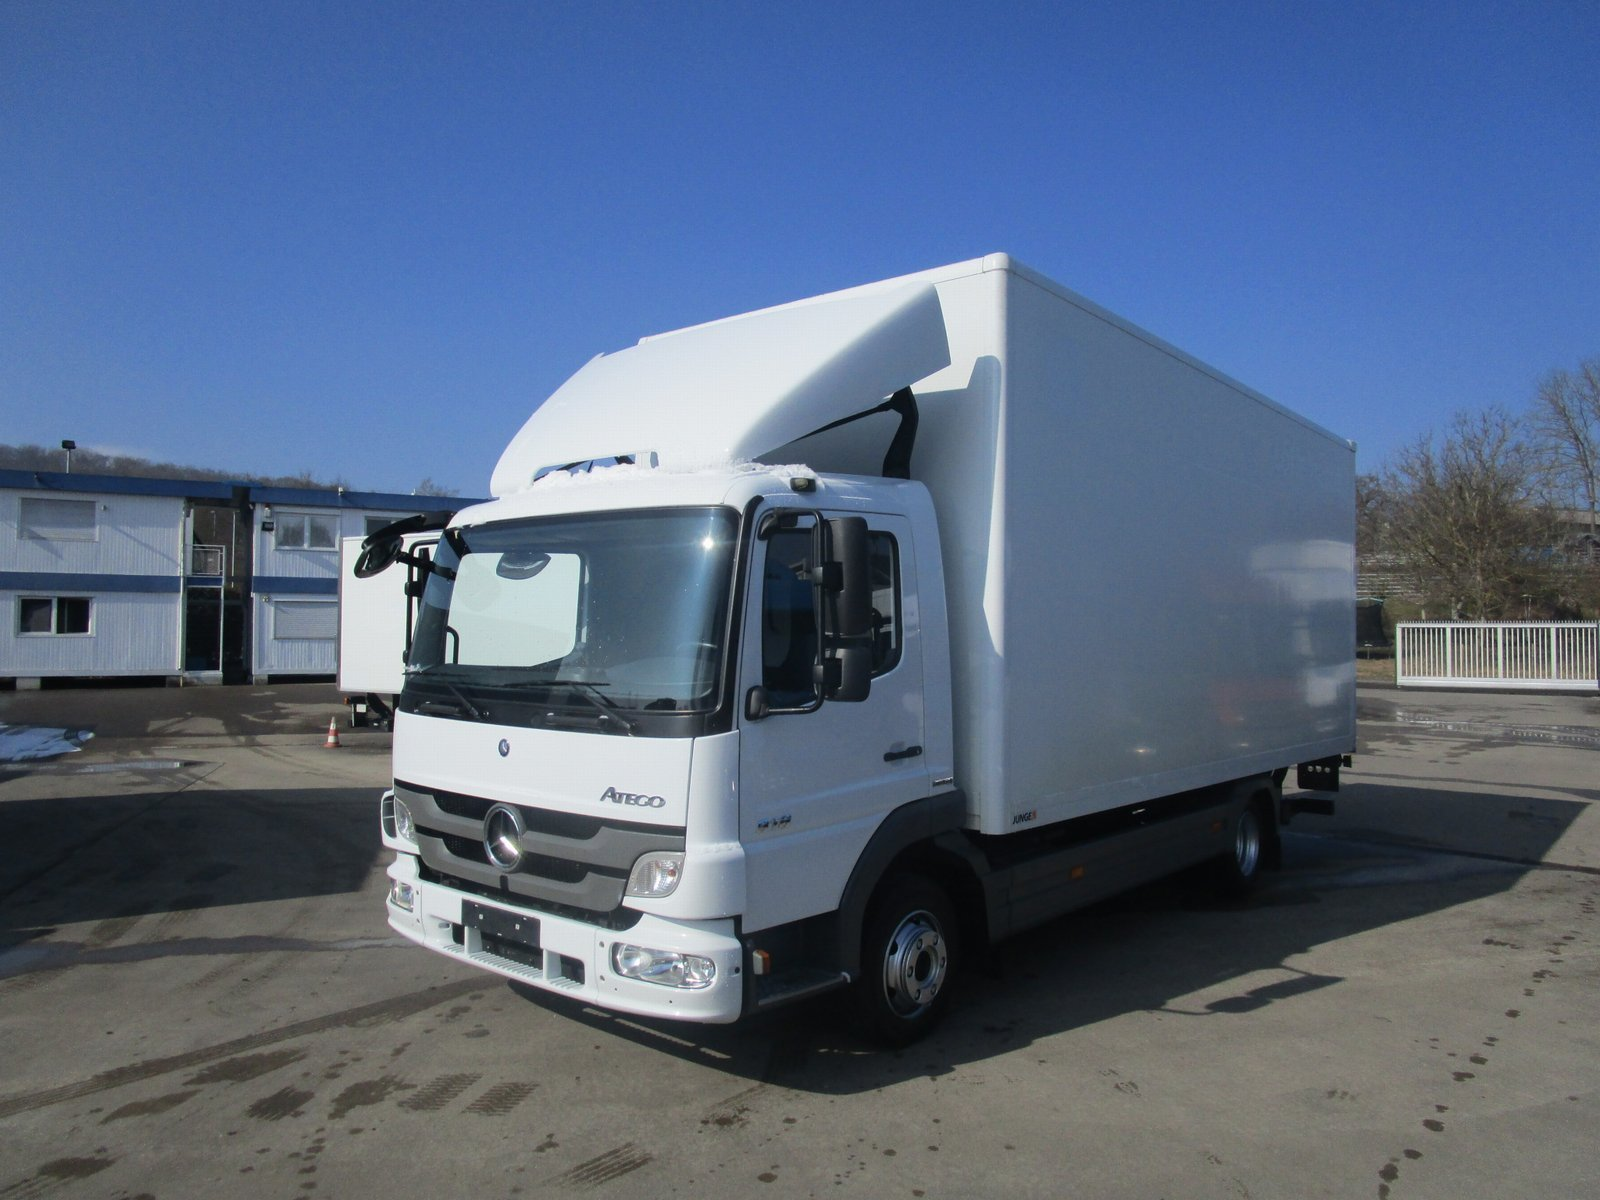 ATEGO III 818 L Koffer 6,10 m LBW 1 to.*Luft HA